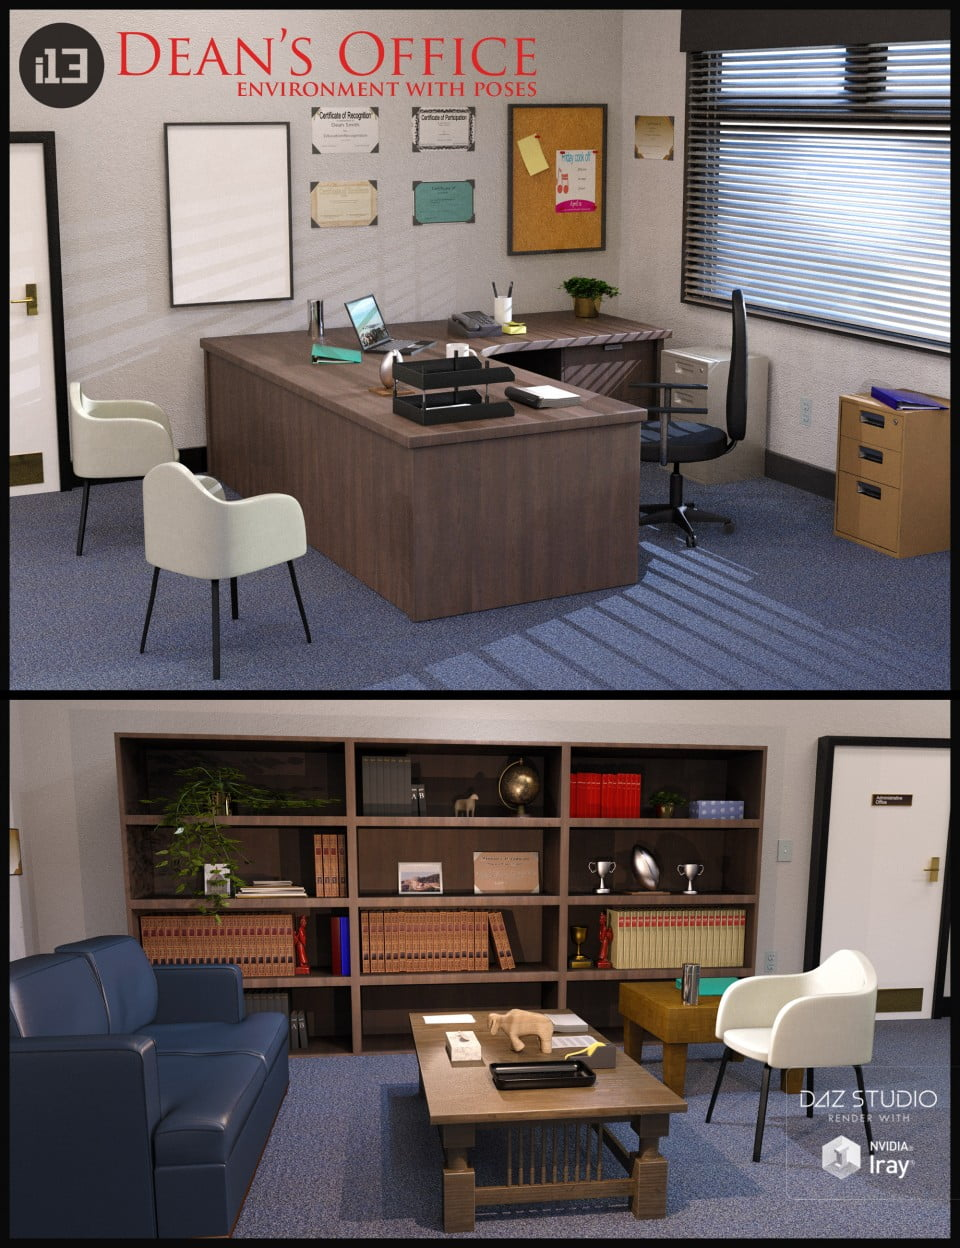 00-main-i13-deans-office-with-poses-daz3d